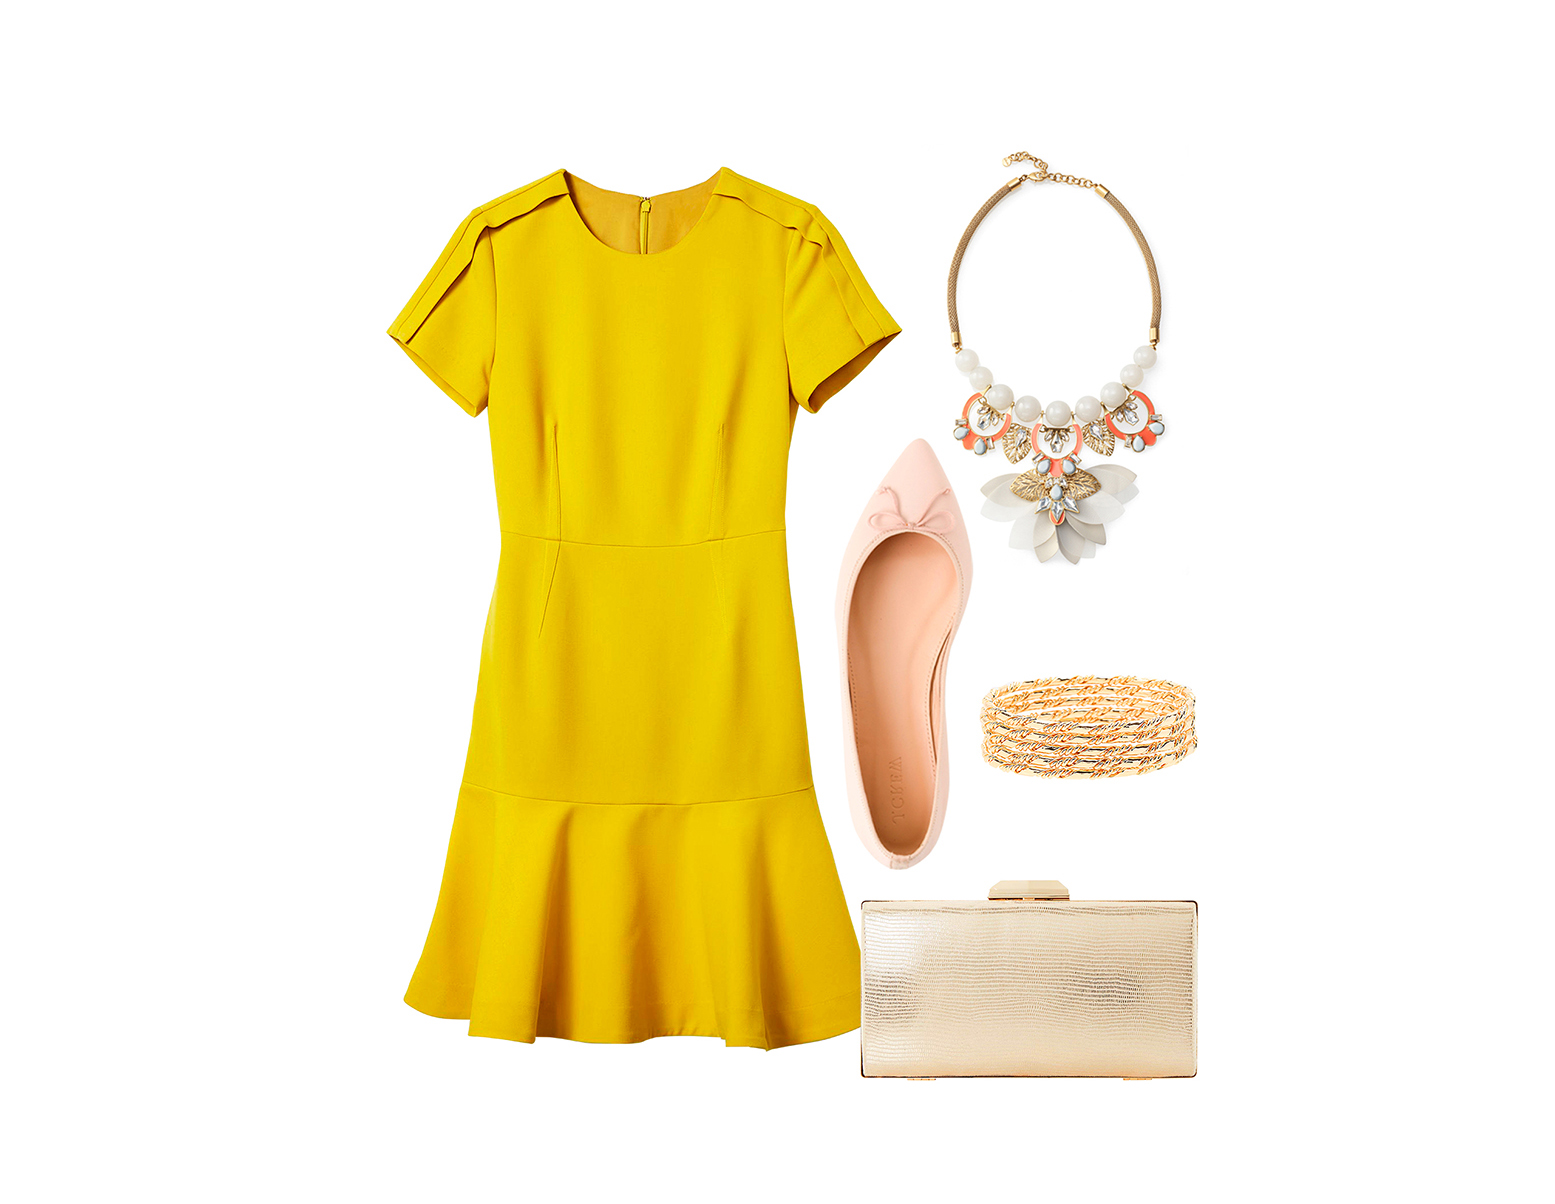 Easter Outfits for Any Plans